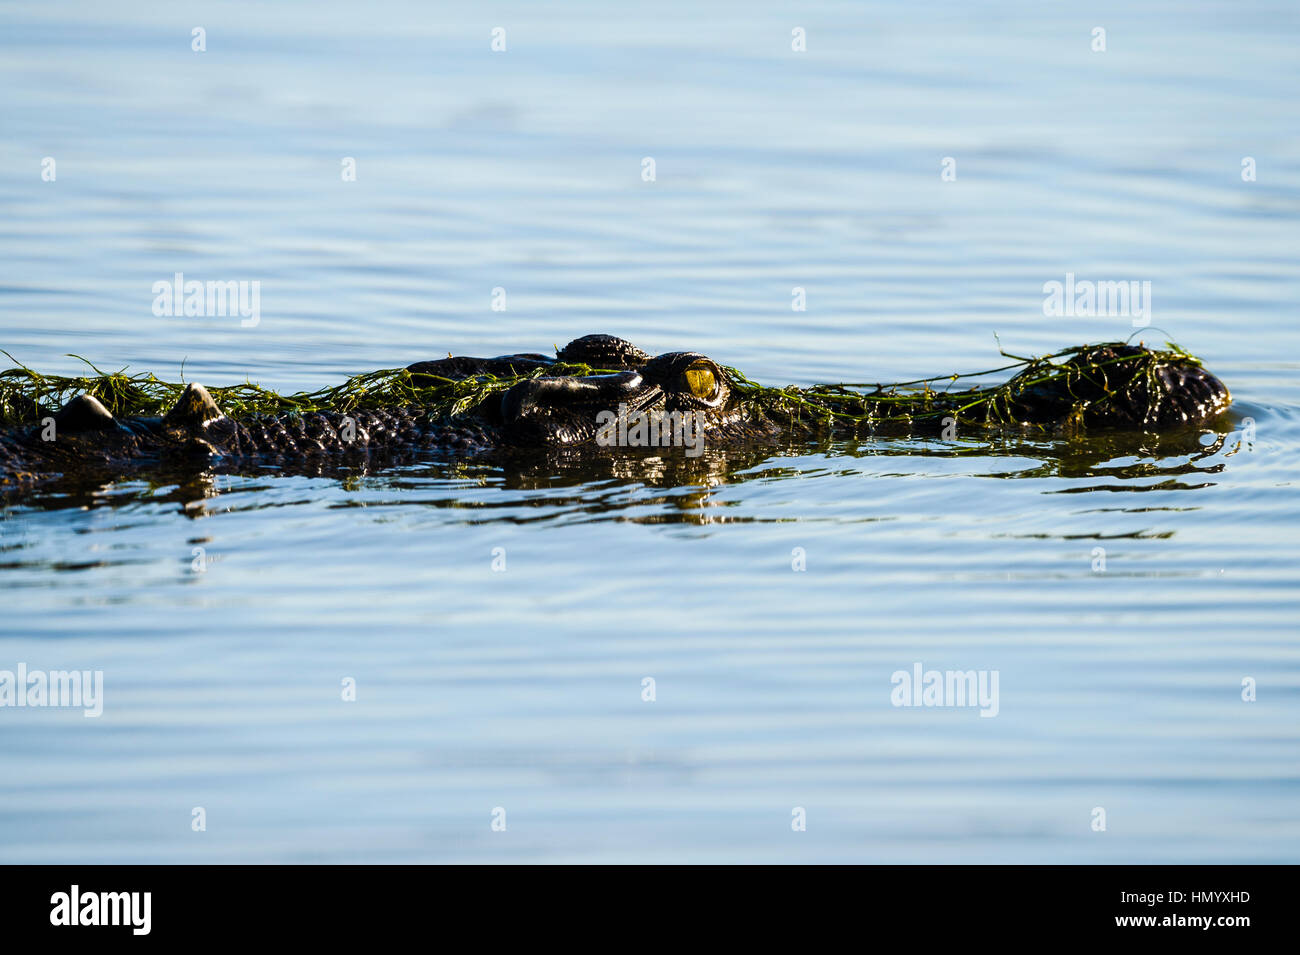 A Saltwater Crocodile floating on the surface of a wetland at sunset. - Stock Image